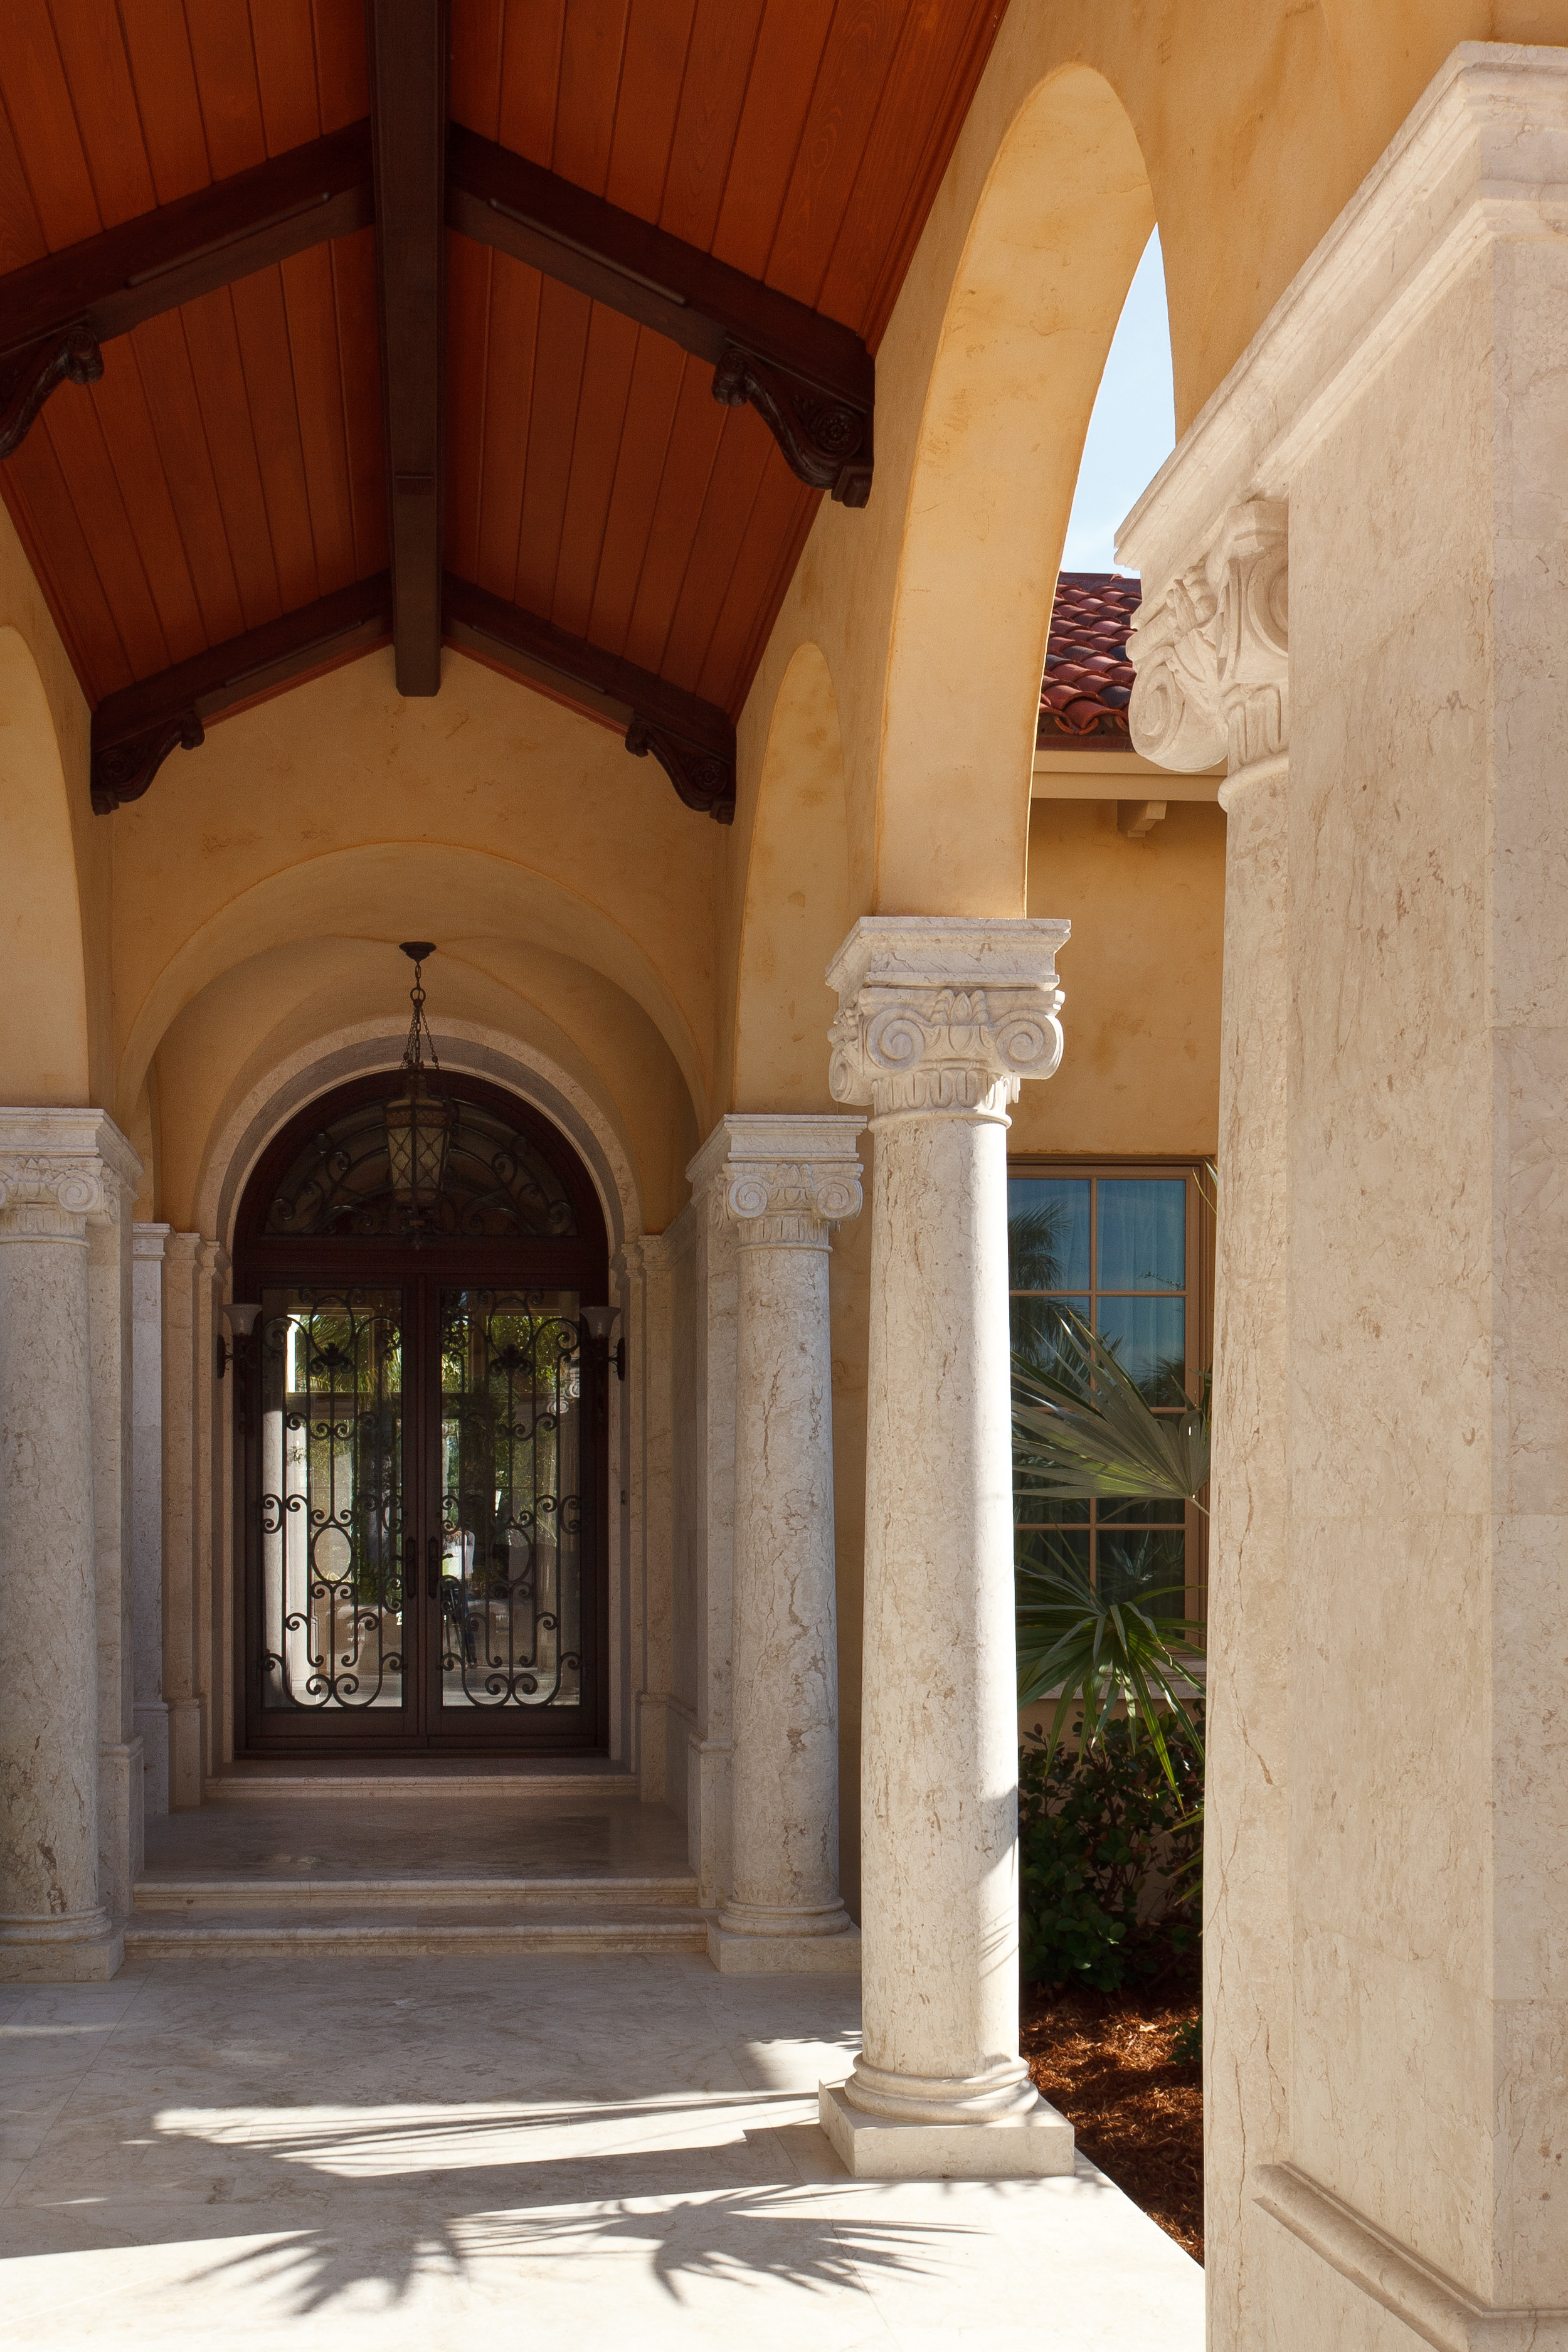 The scale and details of the several colonnades were carefully developed to inform the architect, builder and Syrian stoneworkers. Every column is solid stone. For the front entrance, we were involved with detailing the brackets and ceiling structure, as well as the door grille.